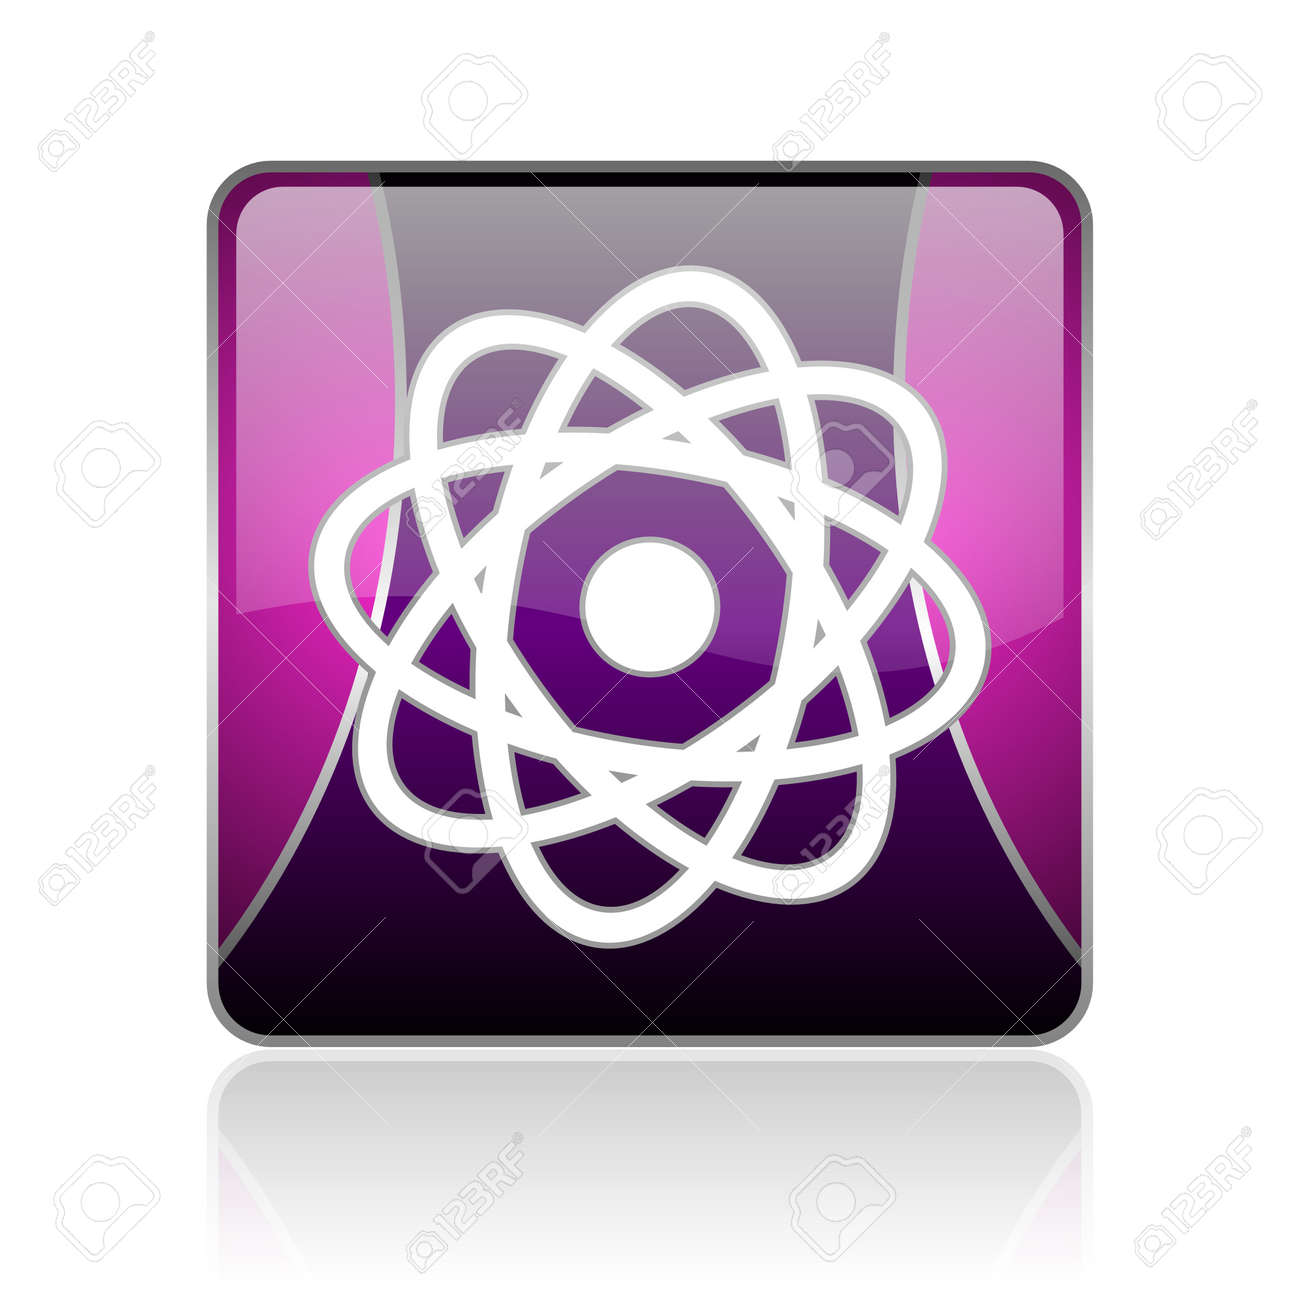 black and violet square glossy internet icon on white background with reflaction Stock Photo - 18888434